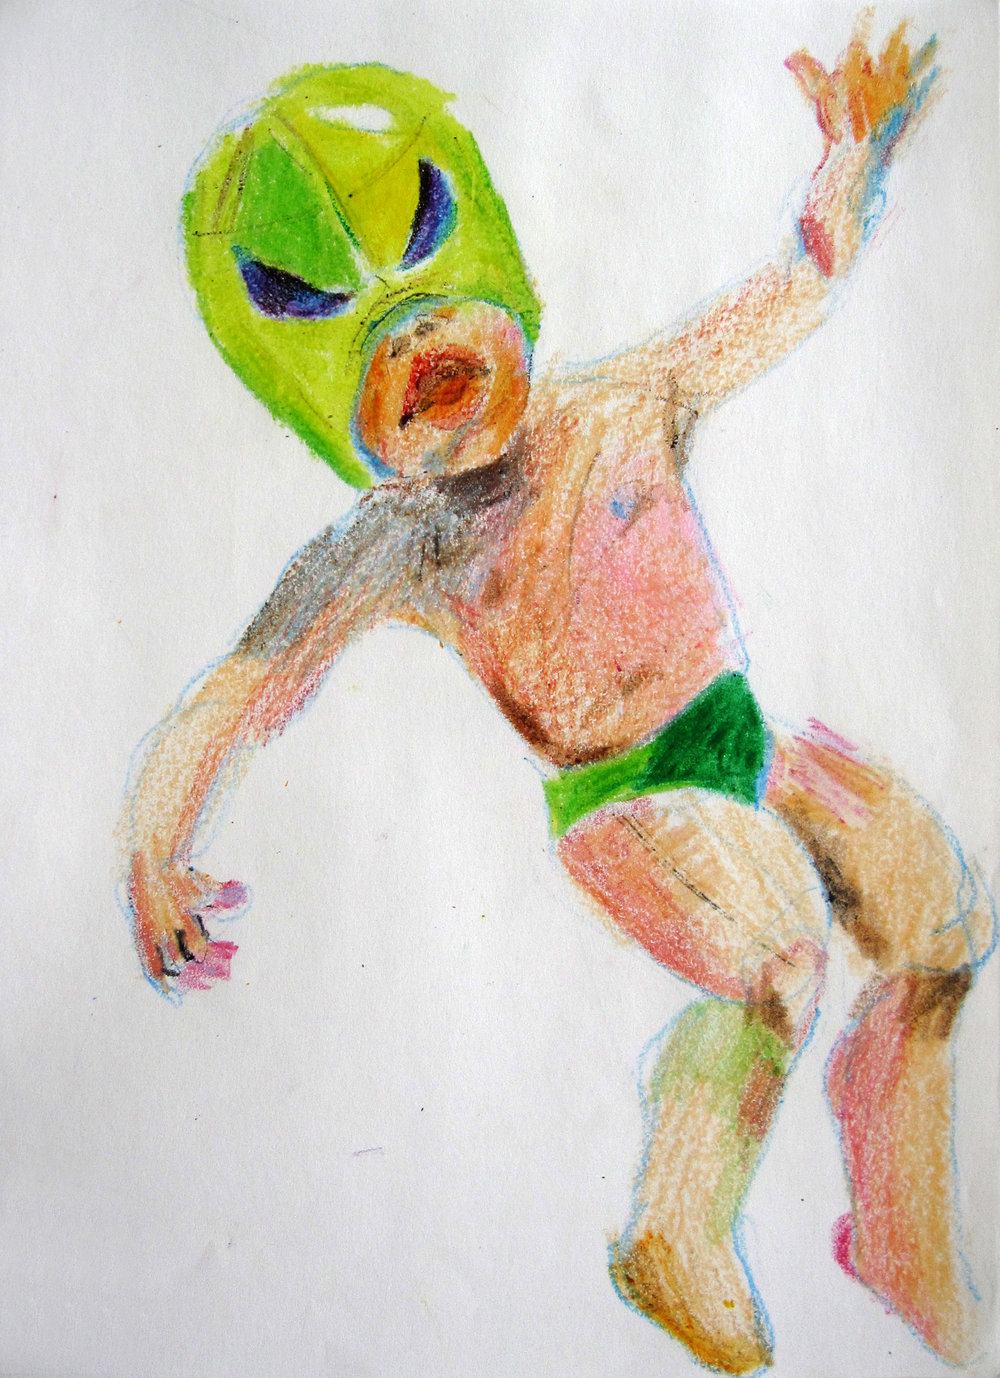 Lucha 9, 2008, Crayon on paper, 14 X11 in.